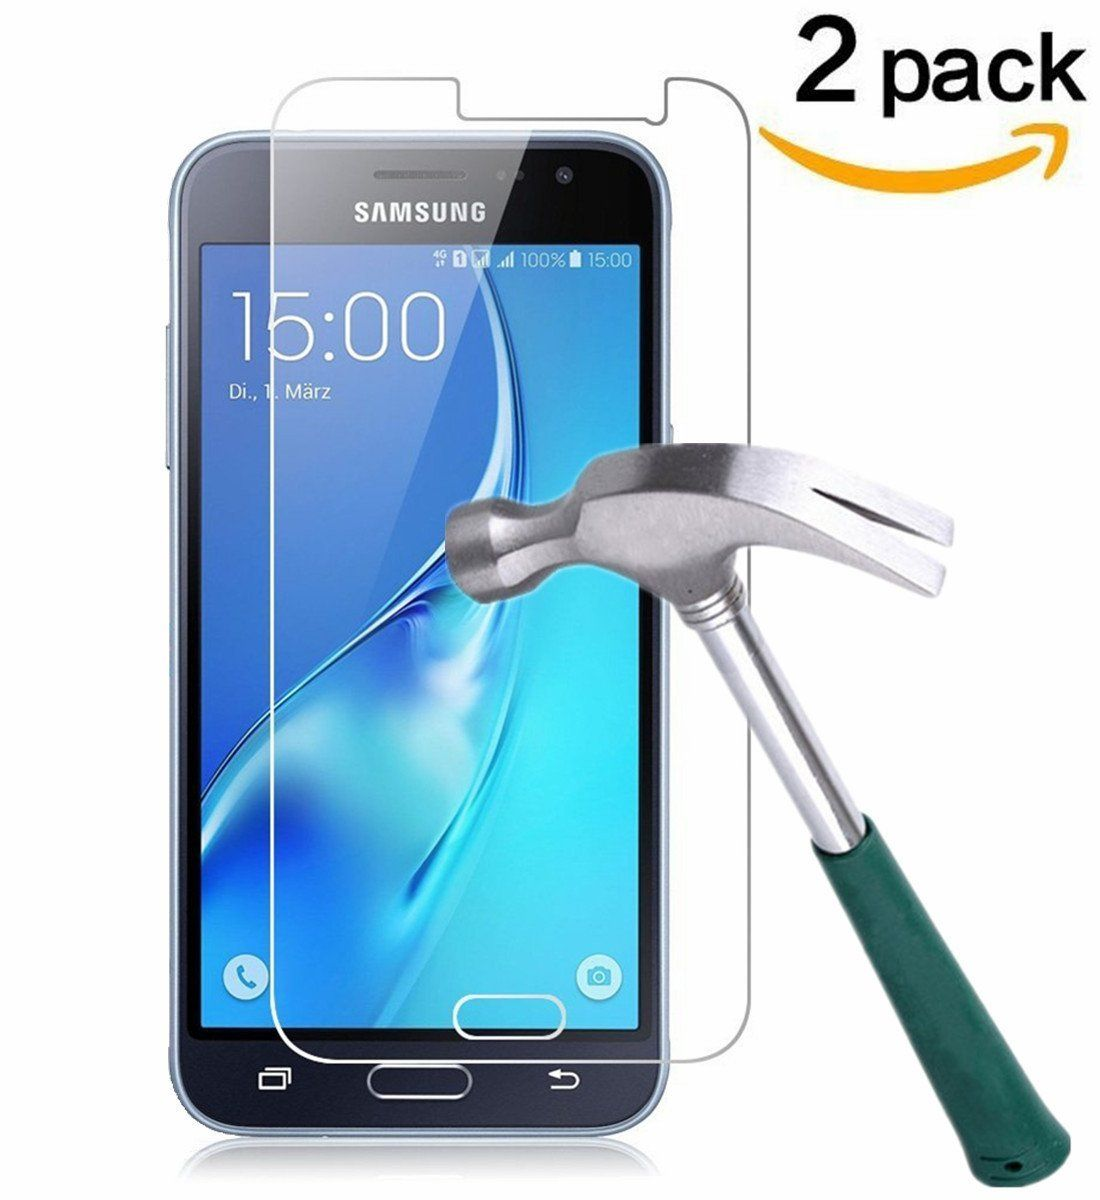 TANTEK Anti-Scratch Tempered Glass Screen Protector for Samsung Galaxy J3 - 2 Pack